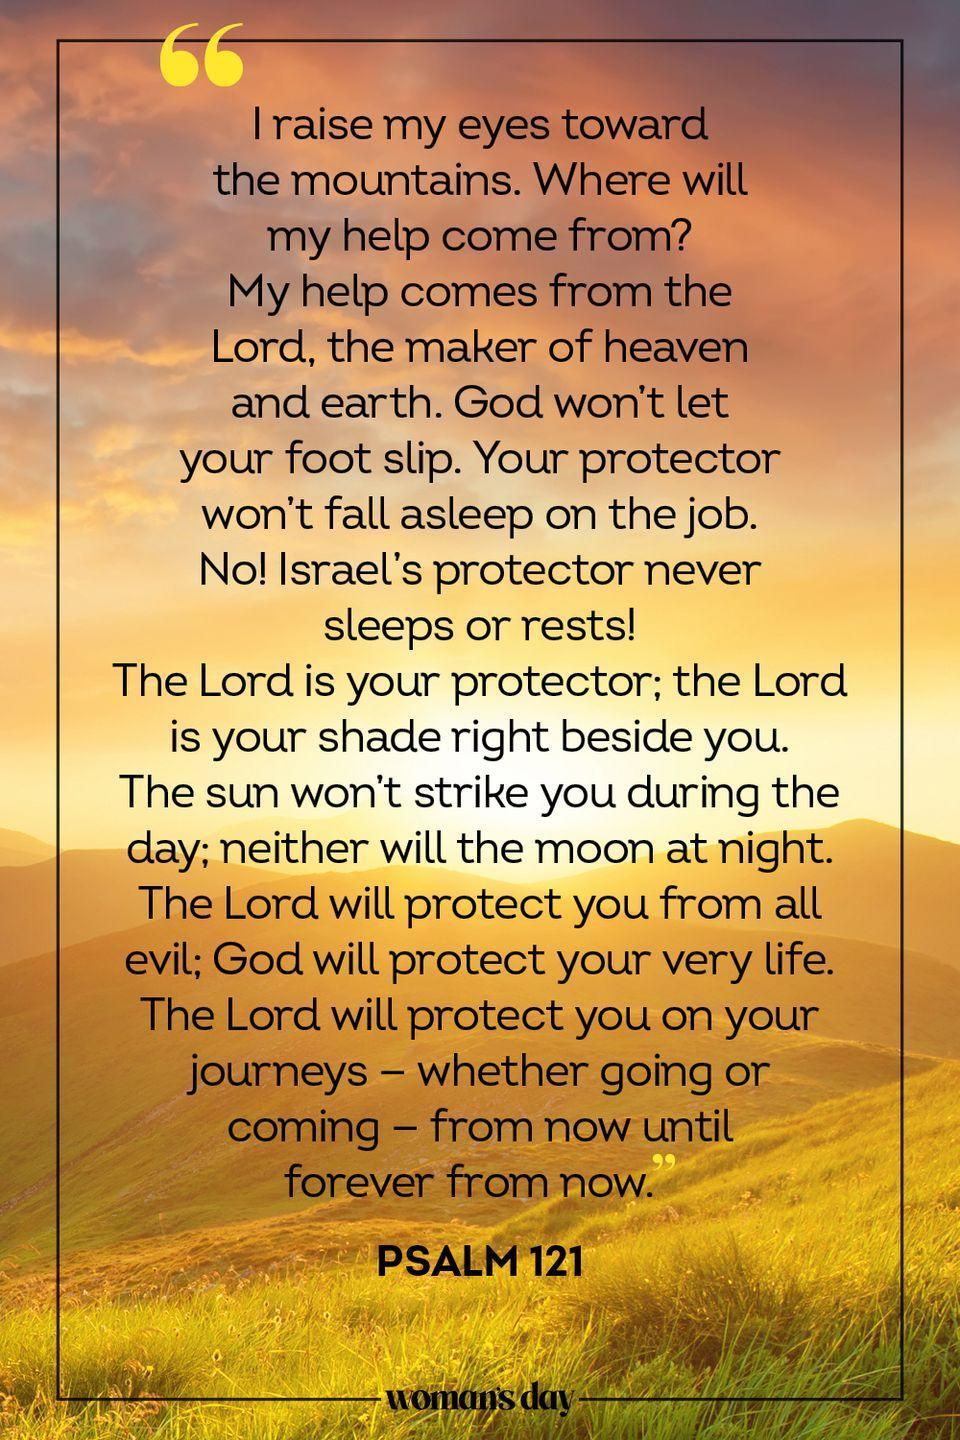 "<p>""I raise my eyes toward the mountains. Where will my help come from? <br>My help comes from the Lord, the maker of heaven and earth. <br>God won't let your foot slip. Your protector won't fall asleep on the job. <br>No! Israel's protector never sleeps or rests! <br>The Lord is your protector; the Lord is your shade right beside you. <br>The sun won't strike you during the day; neither will the moon at night. <br>The Lord will protect you from all evil; God will protect your very life. <br>The Lord will protect you on your journeys — whether going or coming — from now until forever from now."" — Psalm 121</p>"